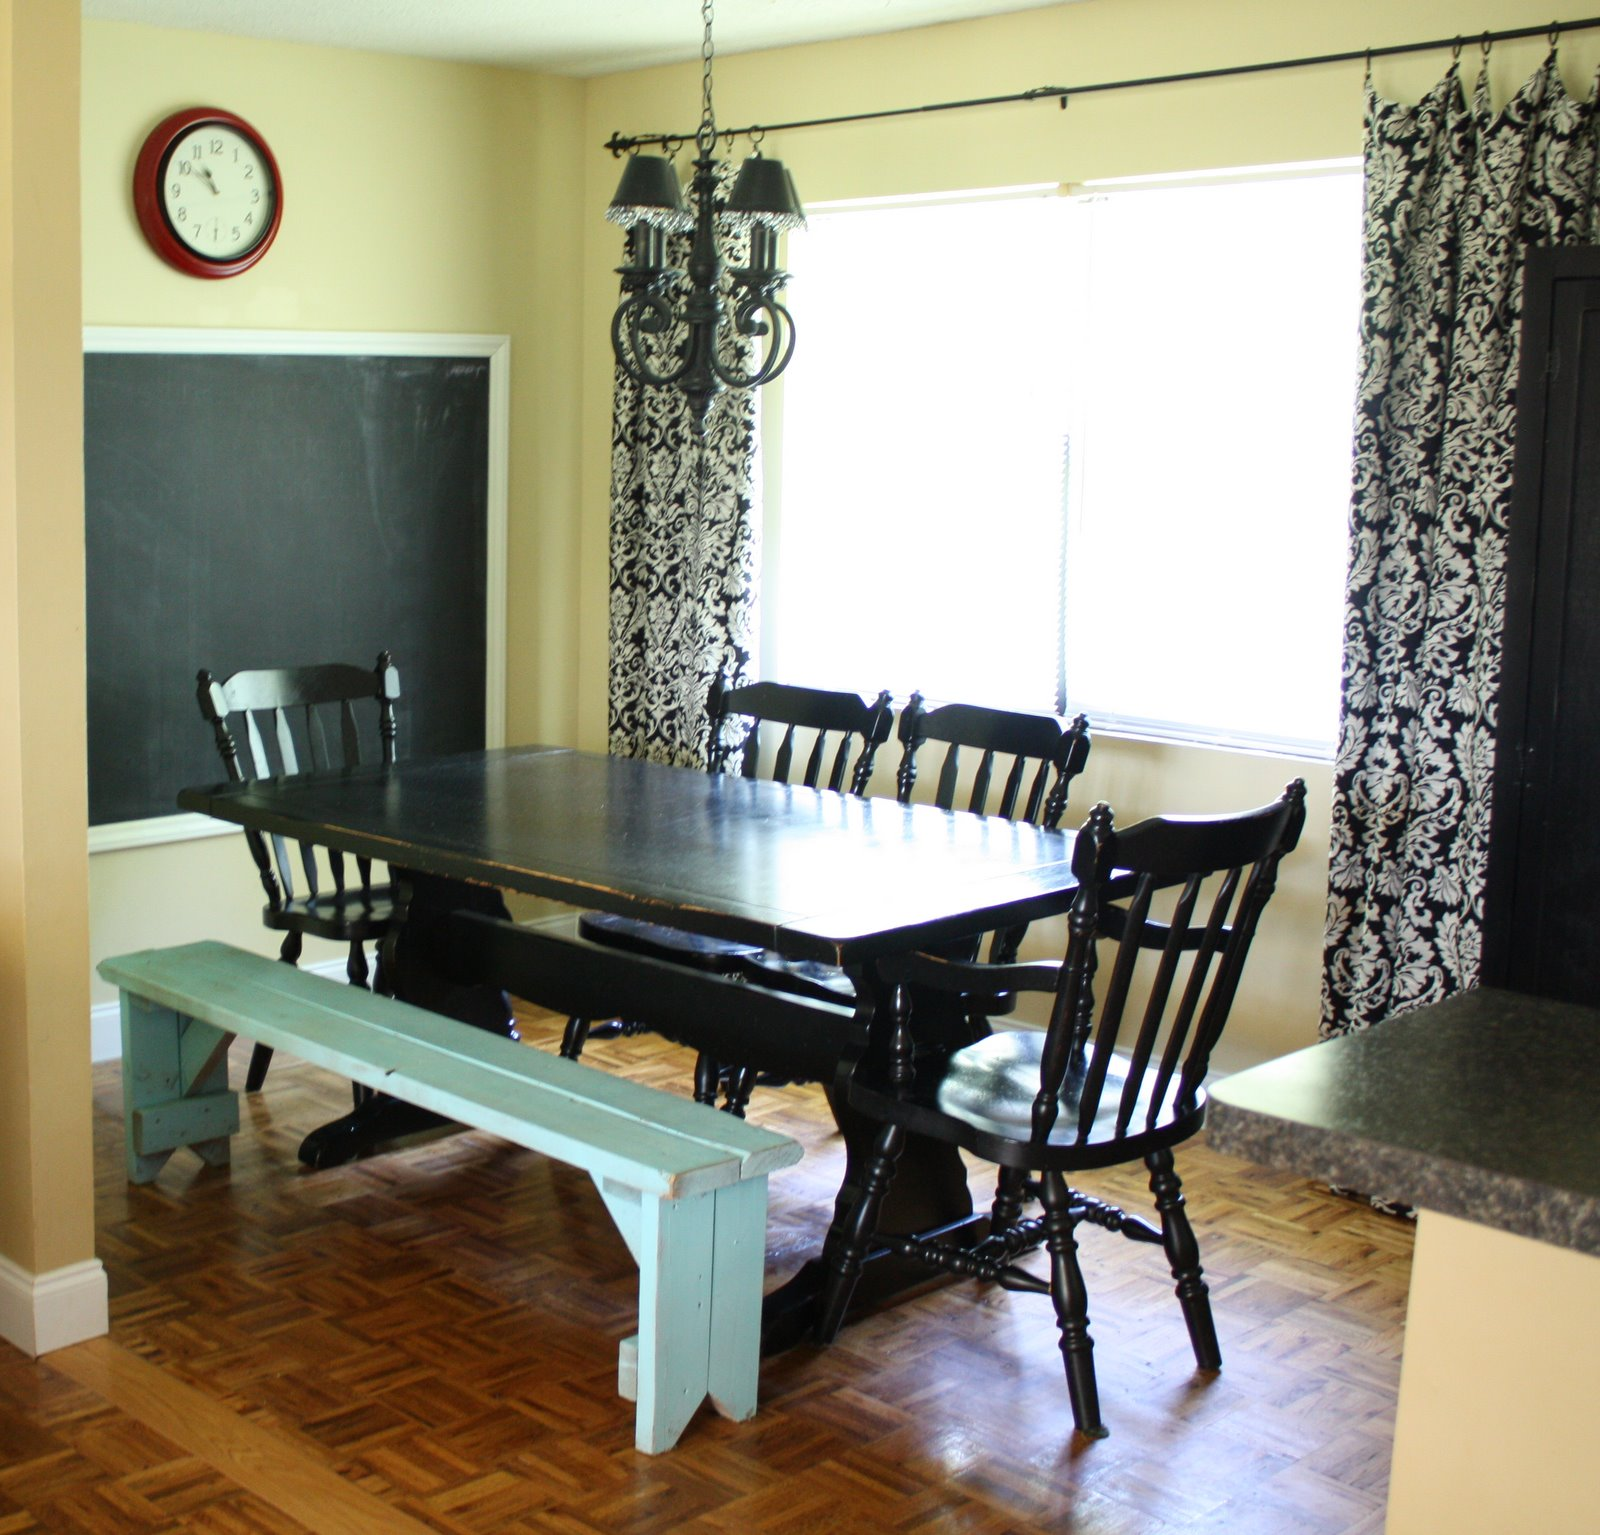 It 39 s just laine our dining room a k a where we have for Homeschool dining room ideas